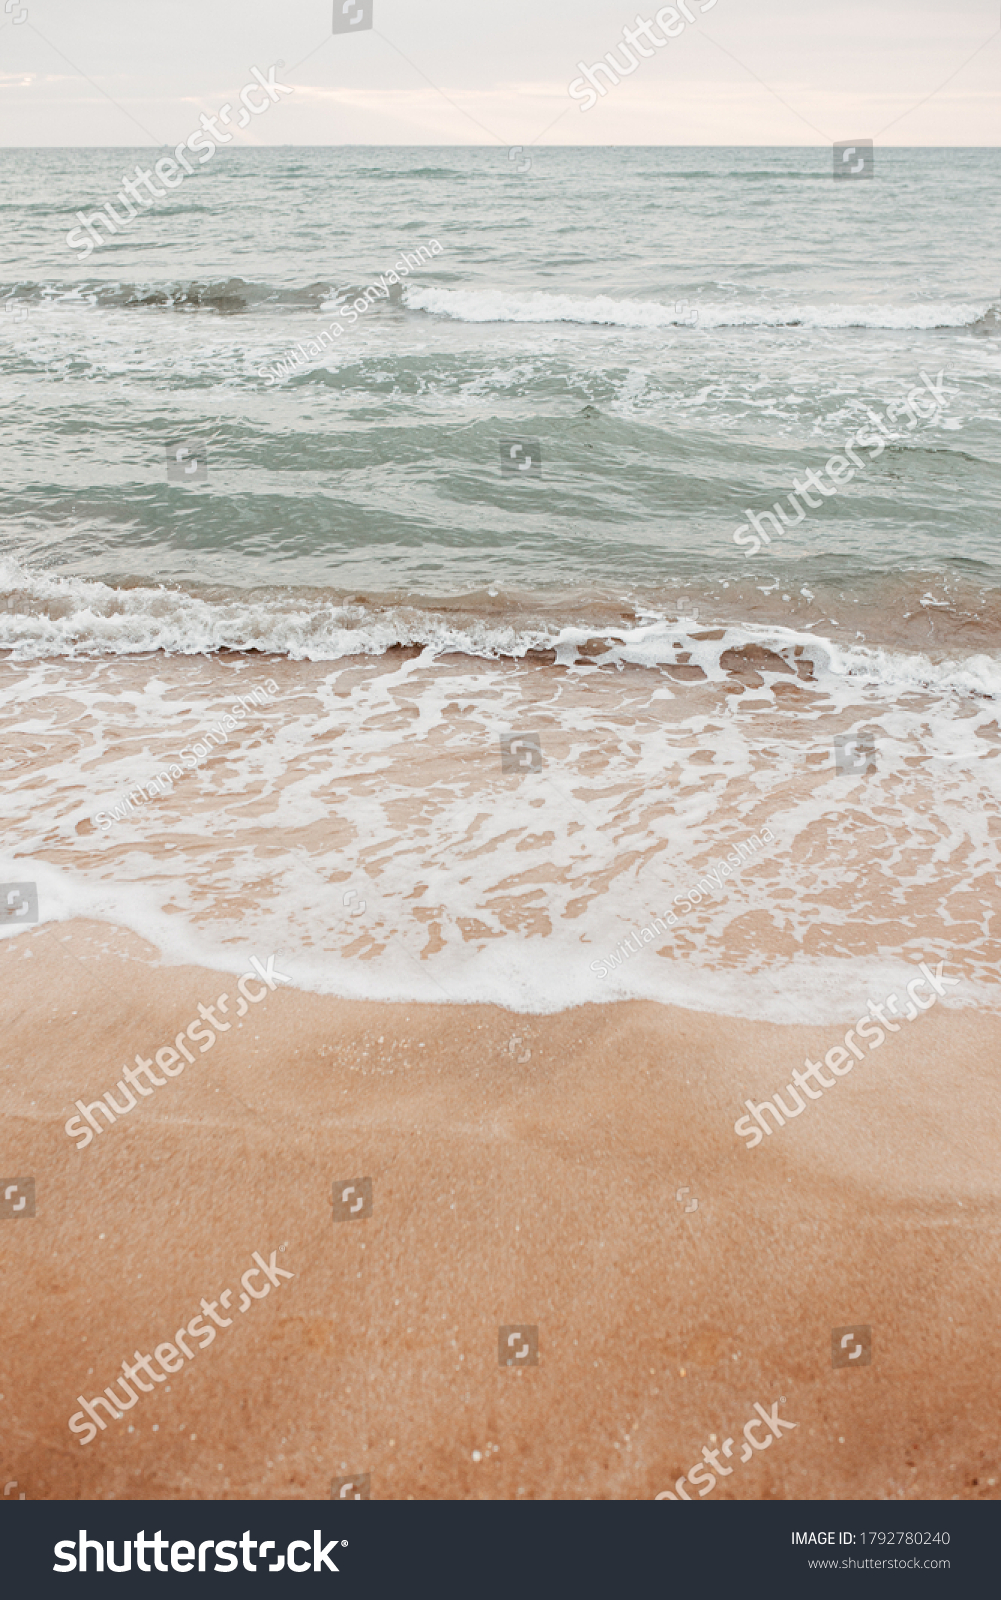 neutral sea ocean background with waves. Photos with a neutral color palette #1792780240